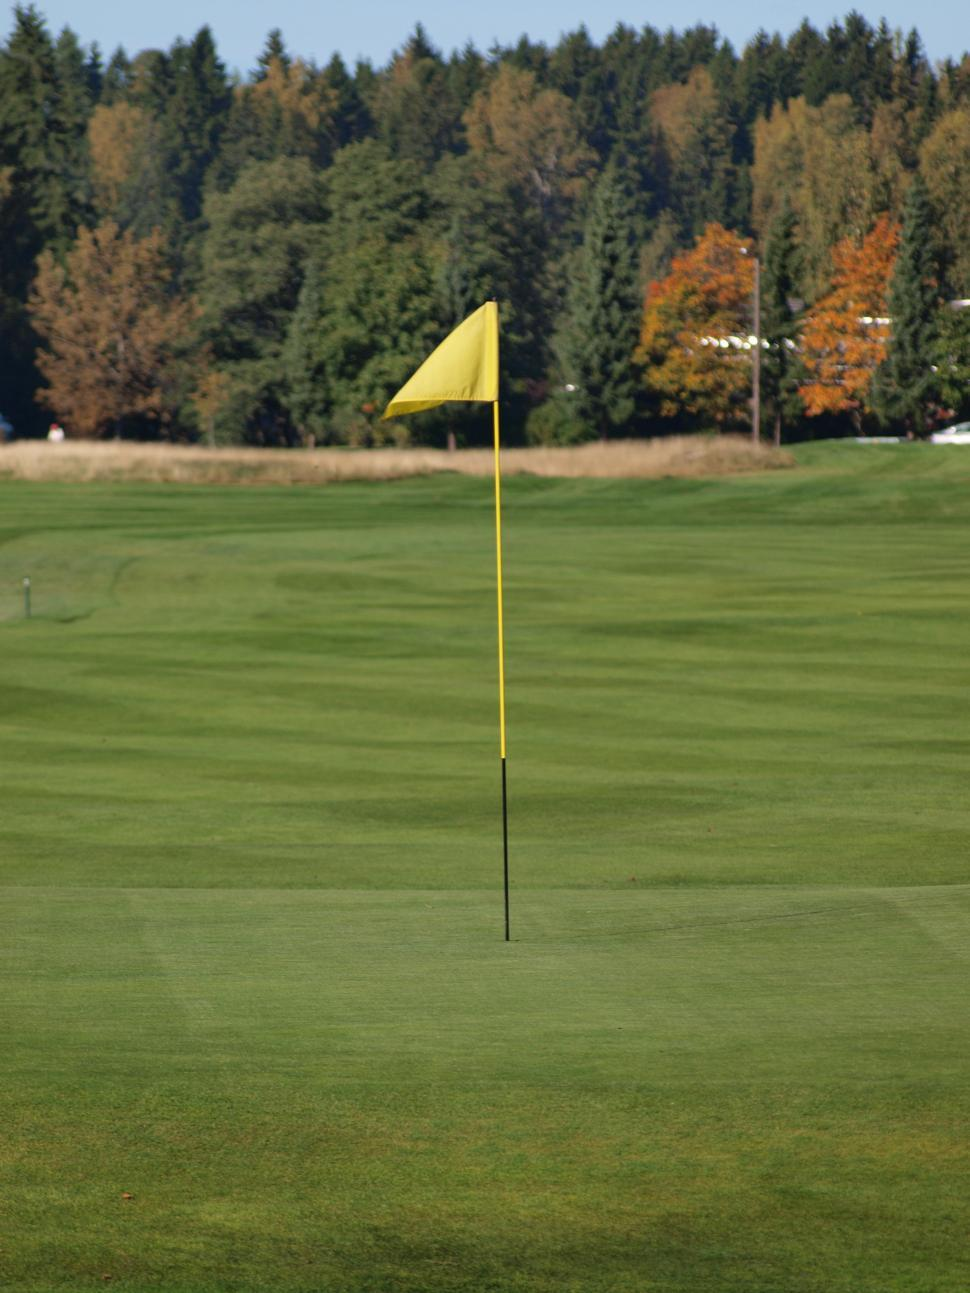 Download Free Stock HD Photo of Golf flag  Online